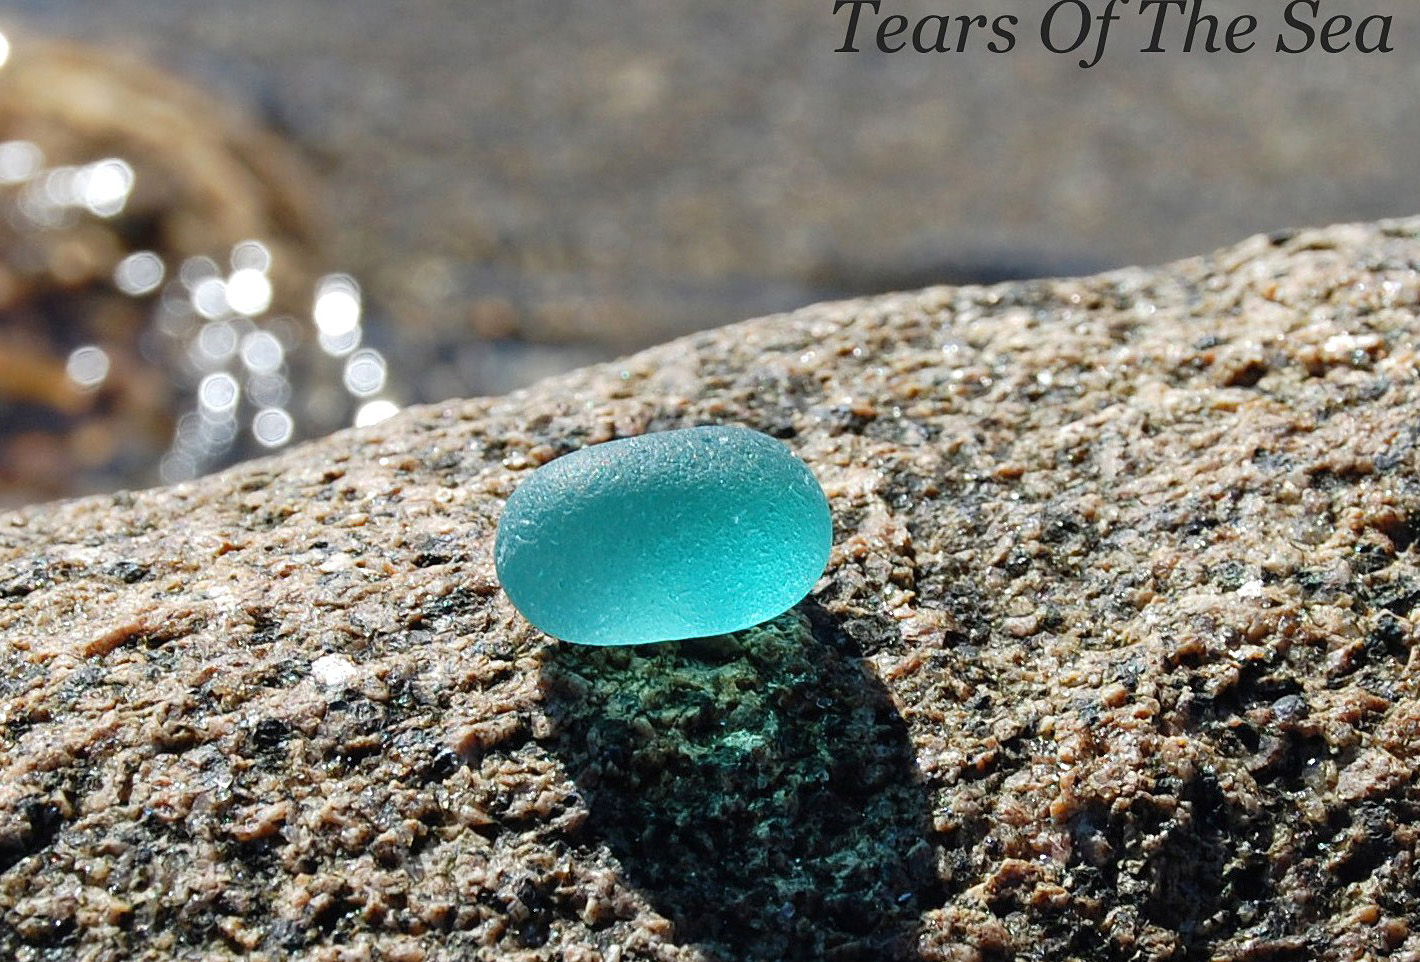 Glasbild Meer Sea Glass Jewelry | Sea Glass Jewelry By Tears Of The Sea